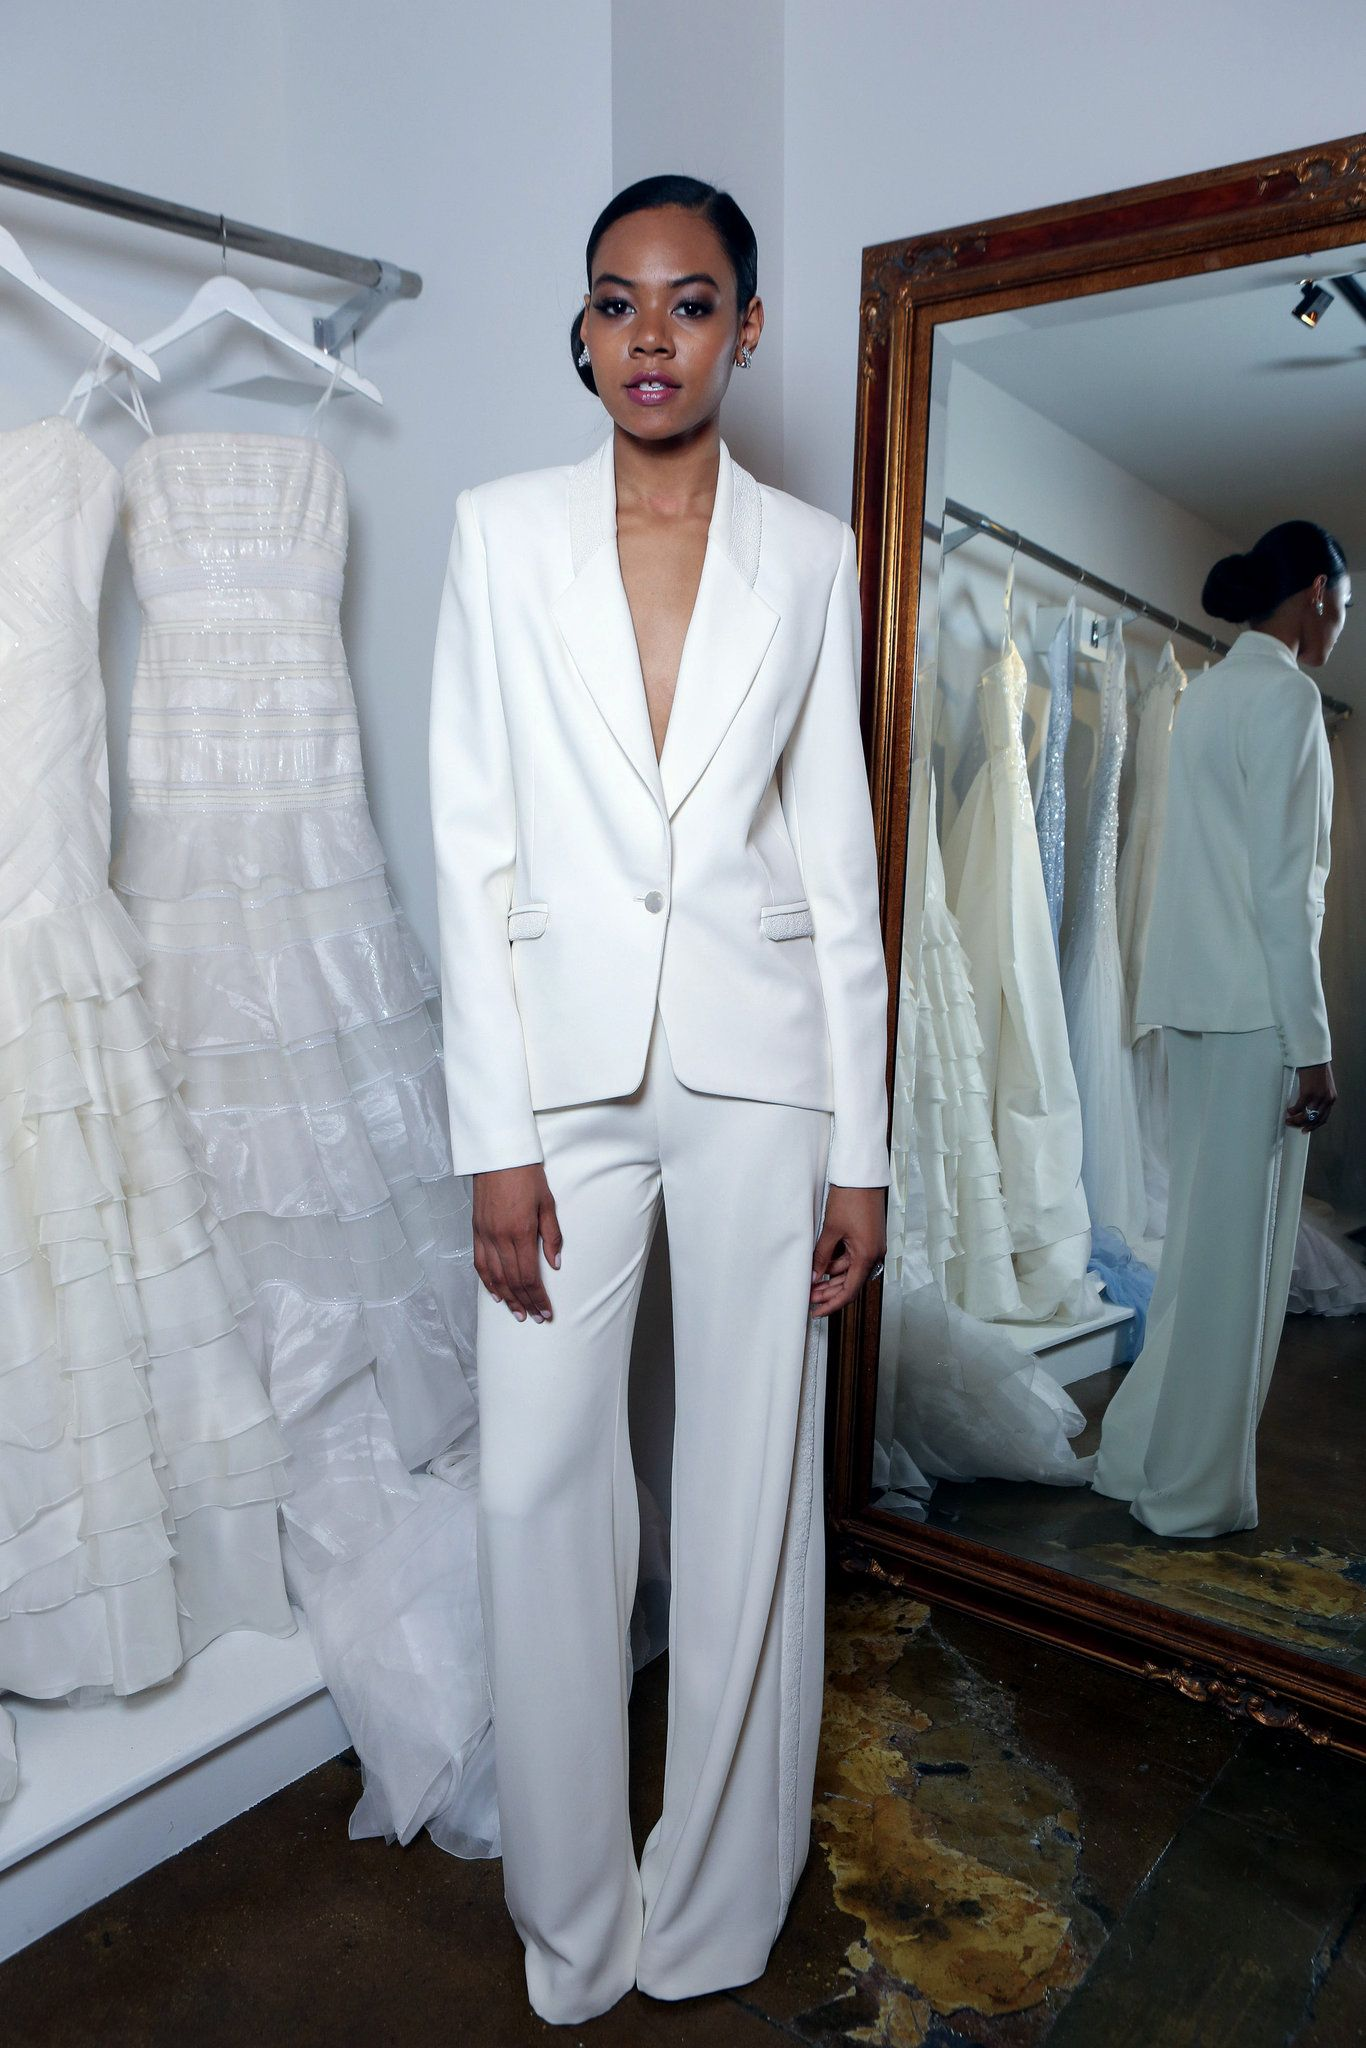 At Bridal Fashion Week, Sultry and Provocative | Fashion weeks ...